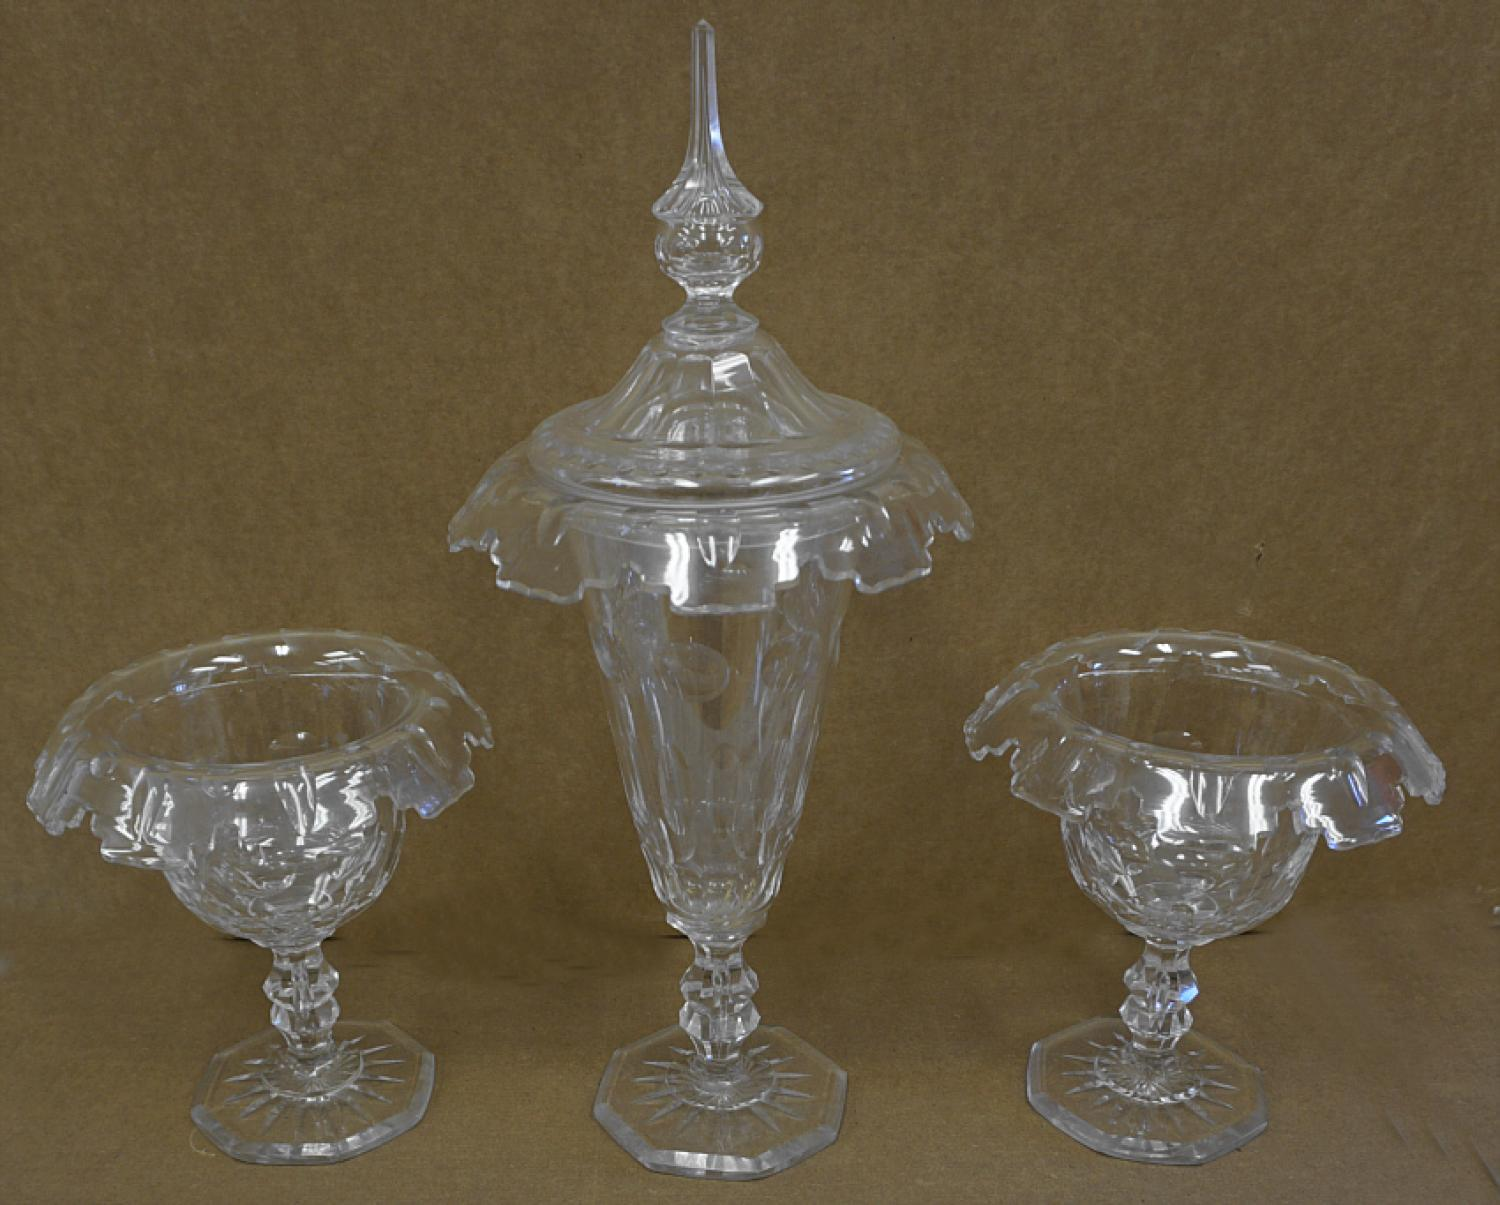 Three piece cut glass compote set c1850